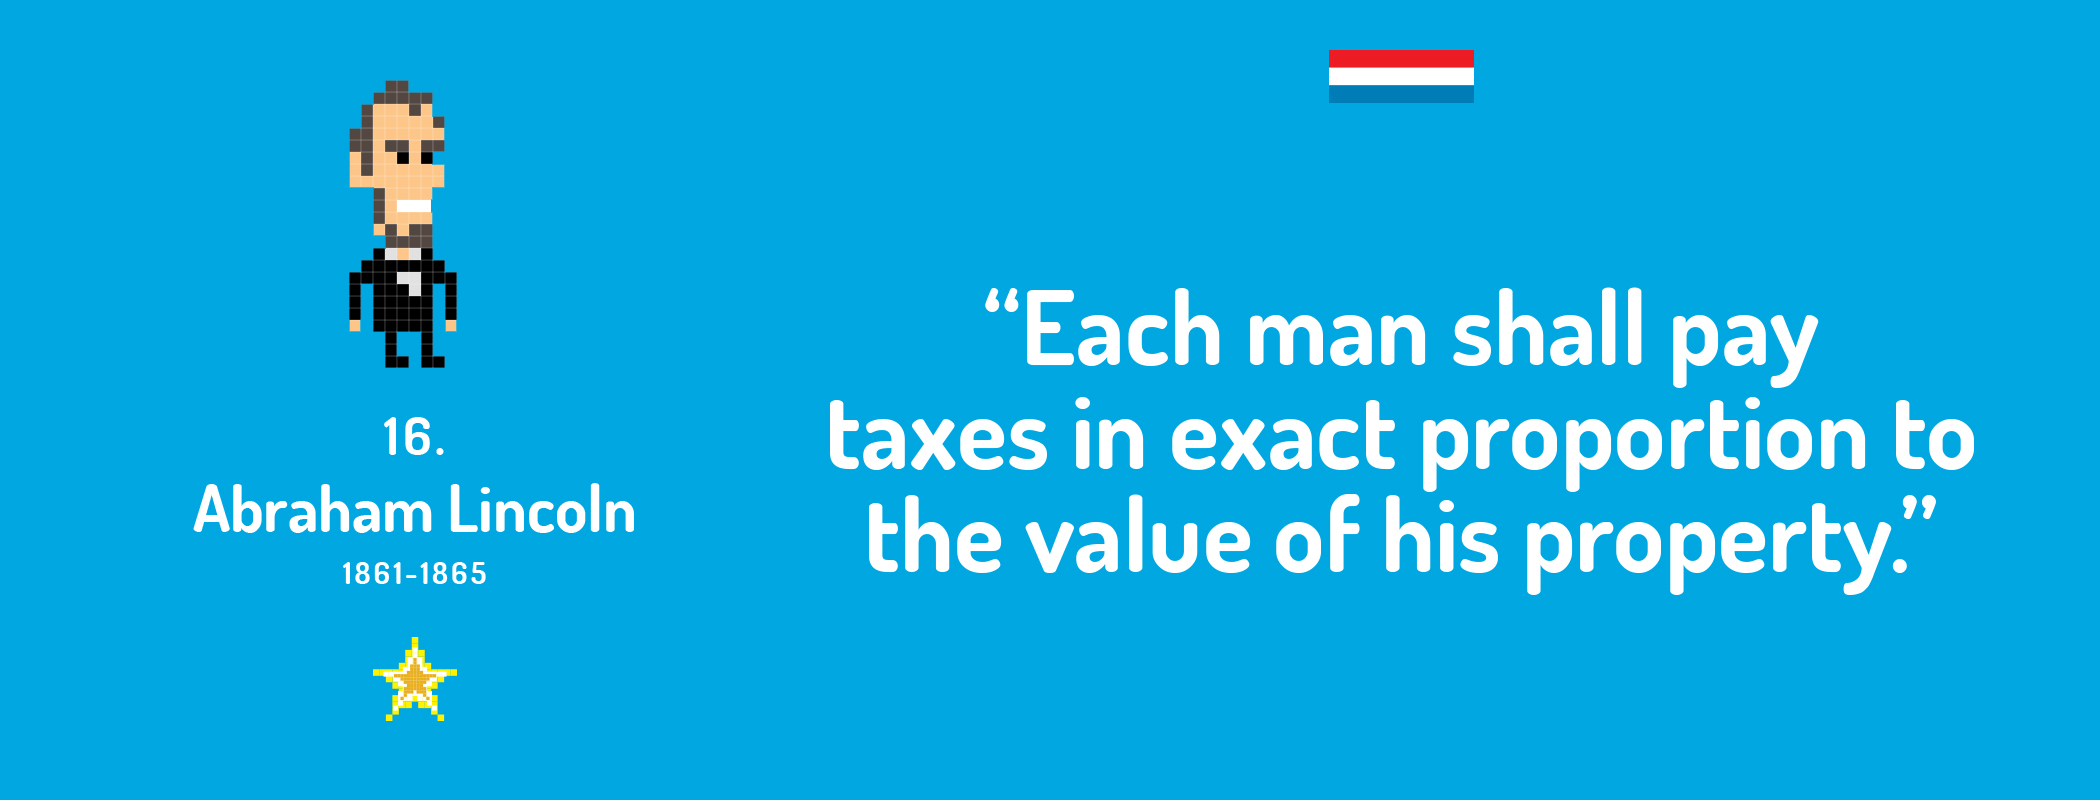 Each man shall pay taxes in exact proportion to the value of his property.